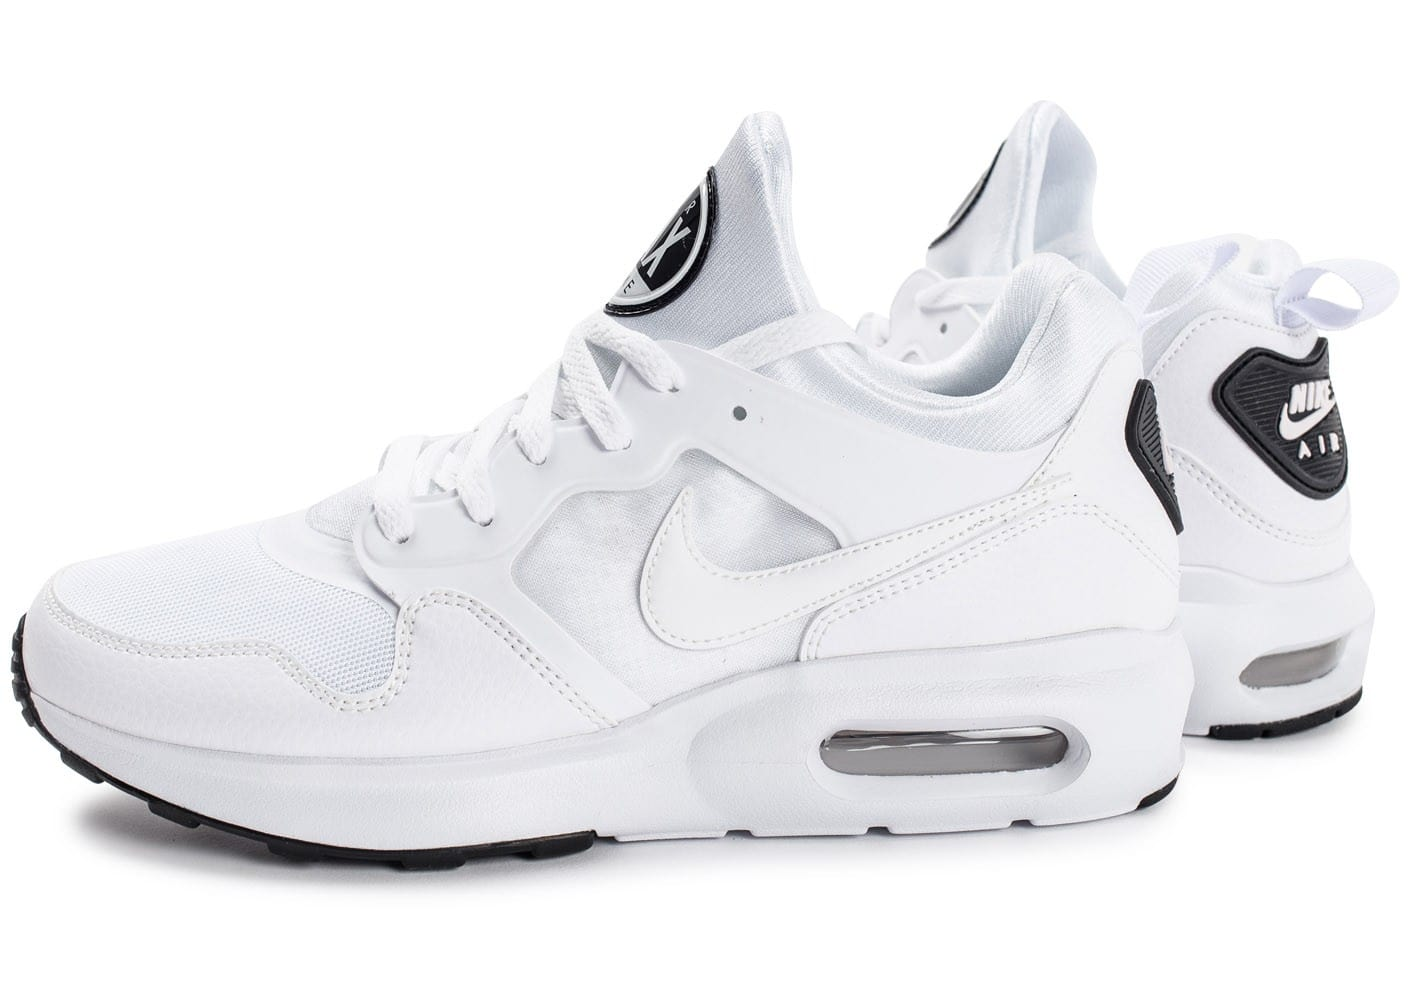 Chaussures Nike Air Max blanches Fashion homme INk157